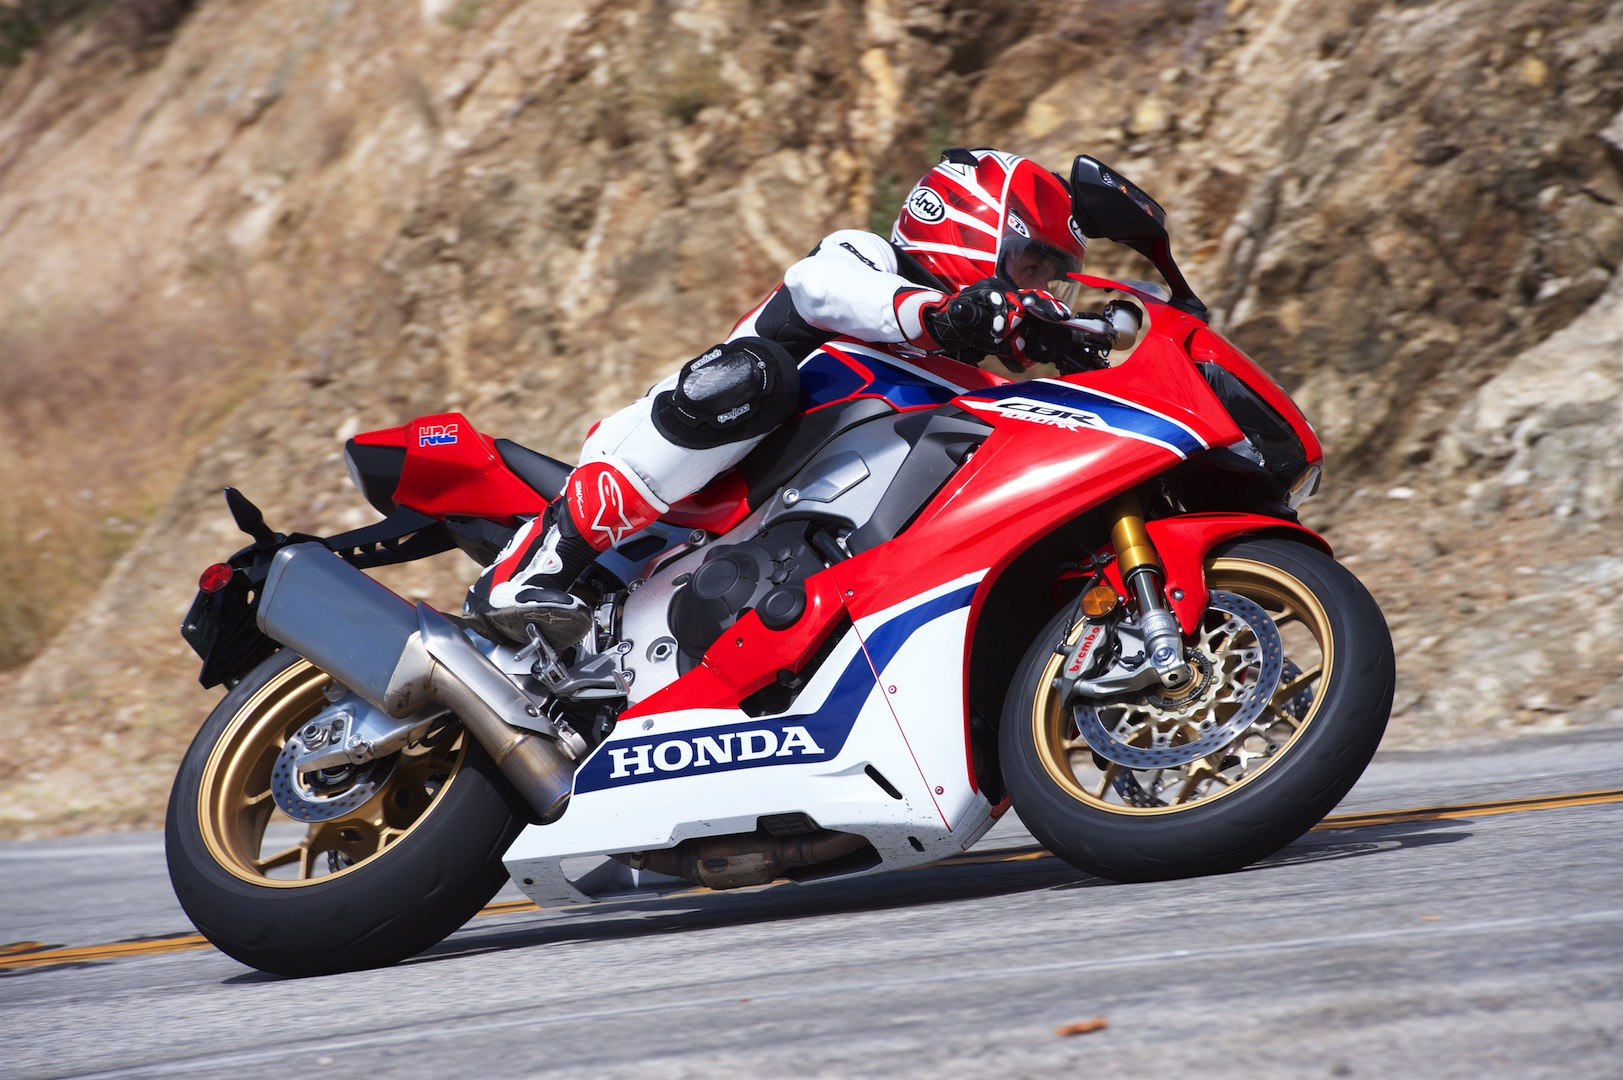 Honda Cbr1000rr Sp Price